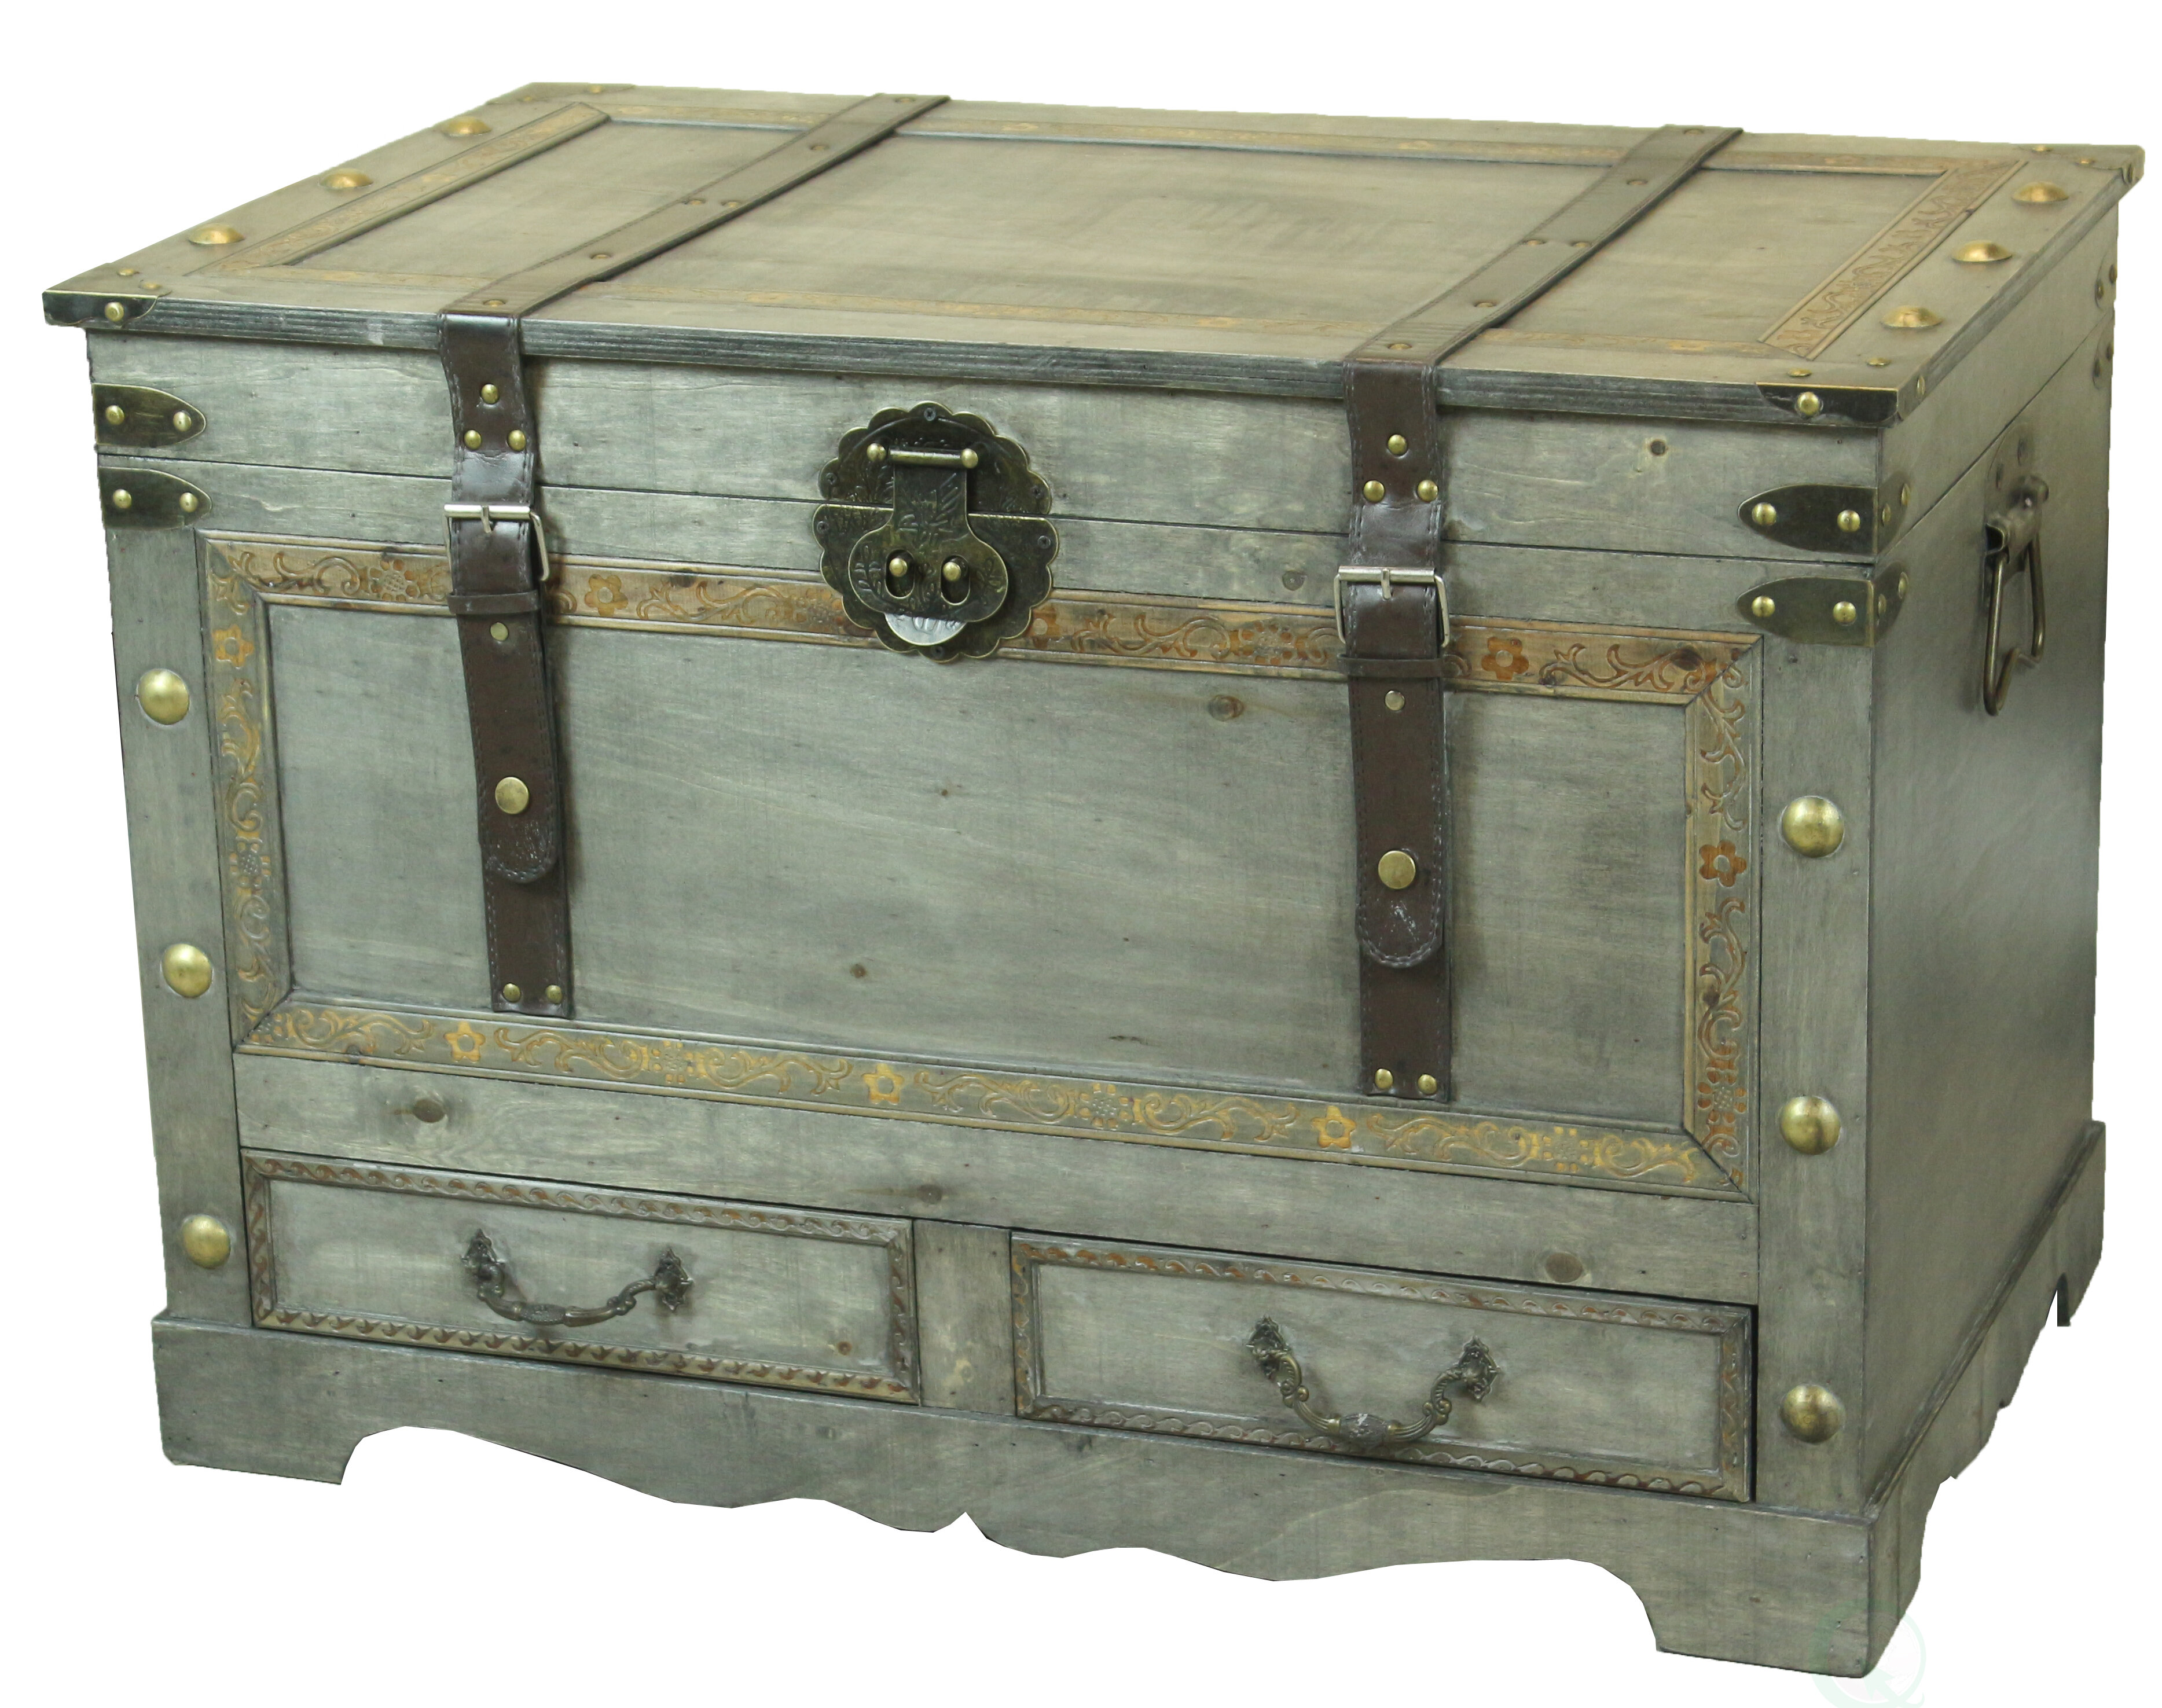 Williston Forge Alida Rustic Wooden Coffee Table Trunk